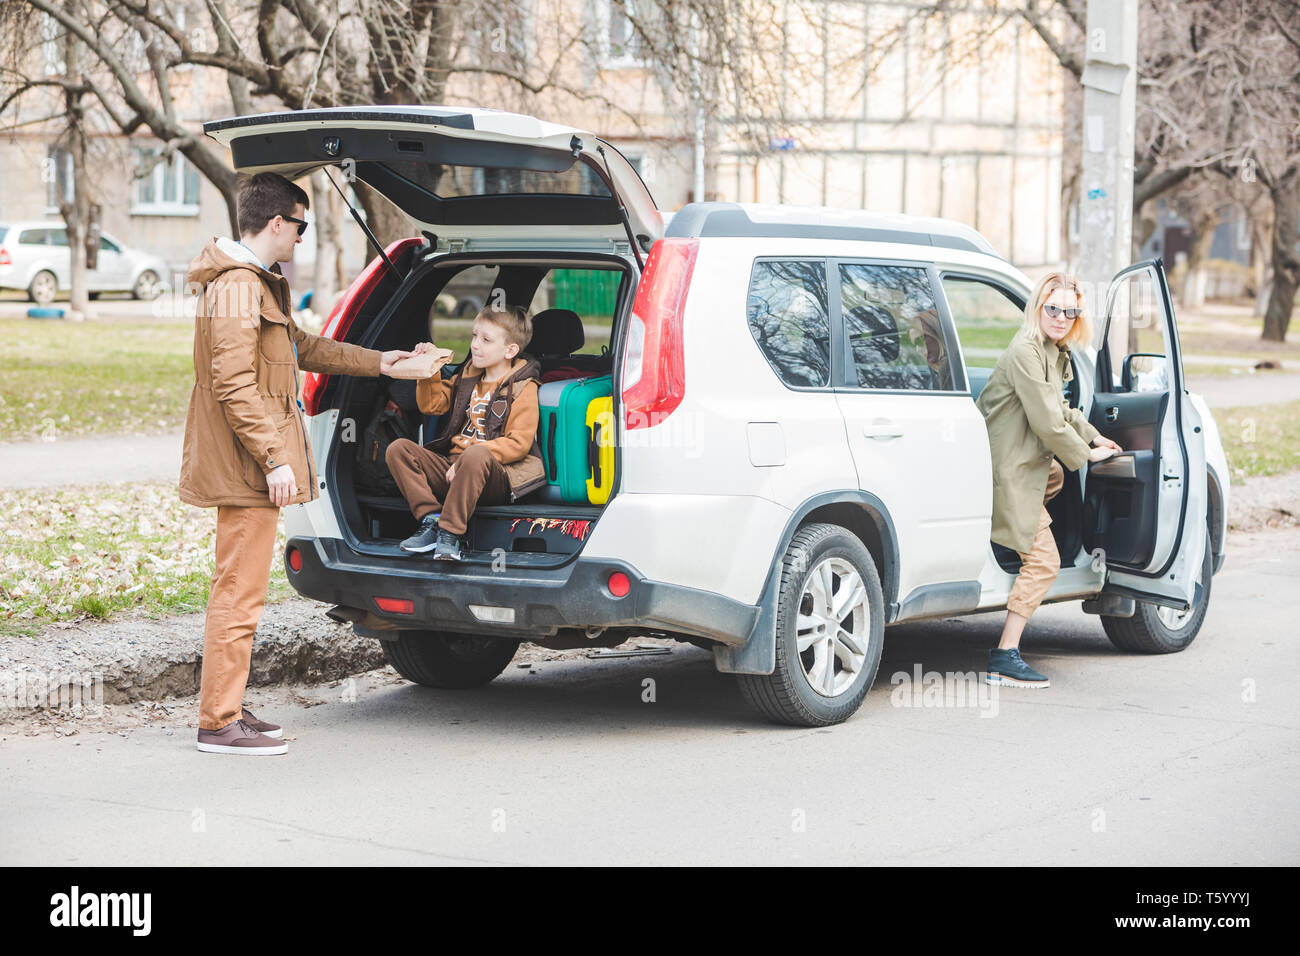 young family packing for car travel. putting bags into trunk. road trip - Stock Image